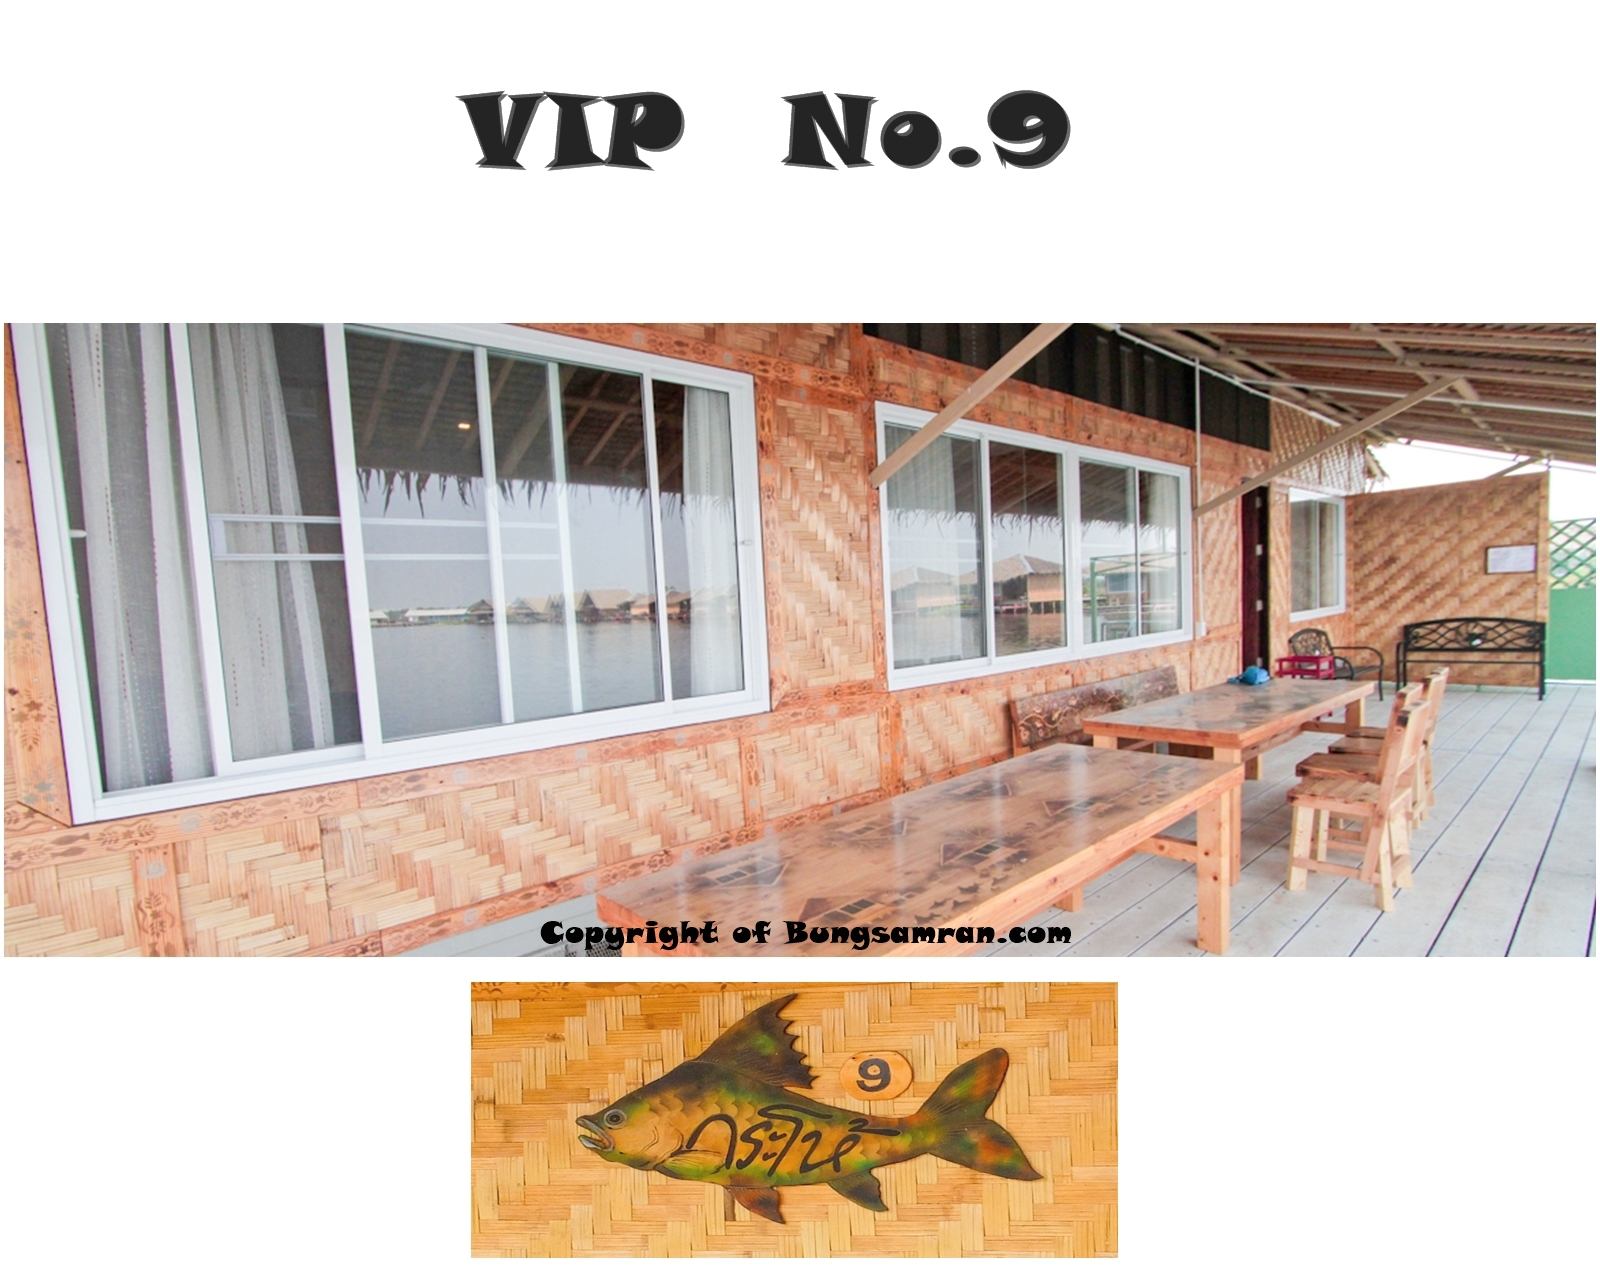 Bungsamran Resort VIP No.9